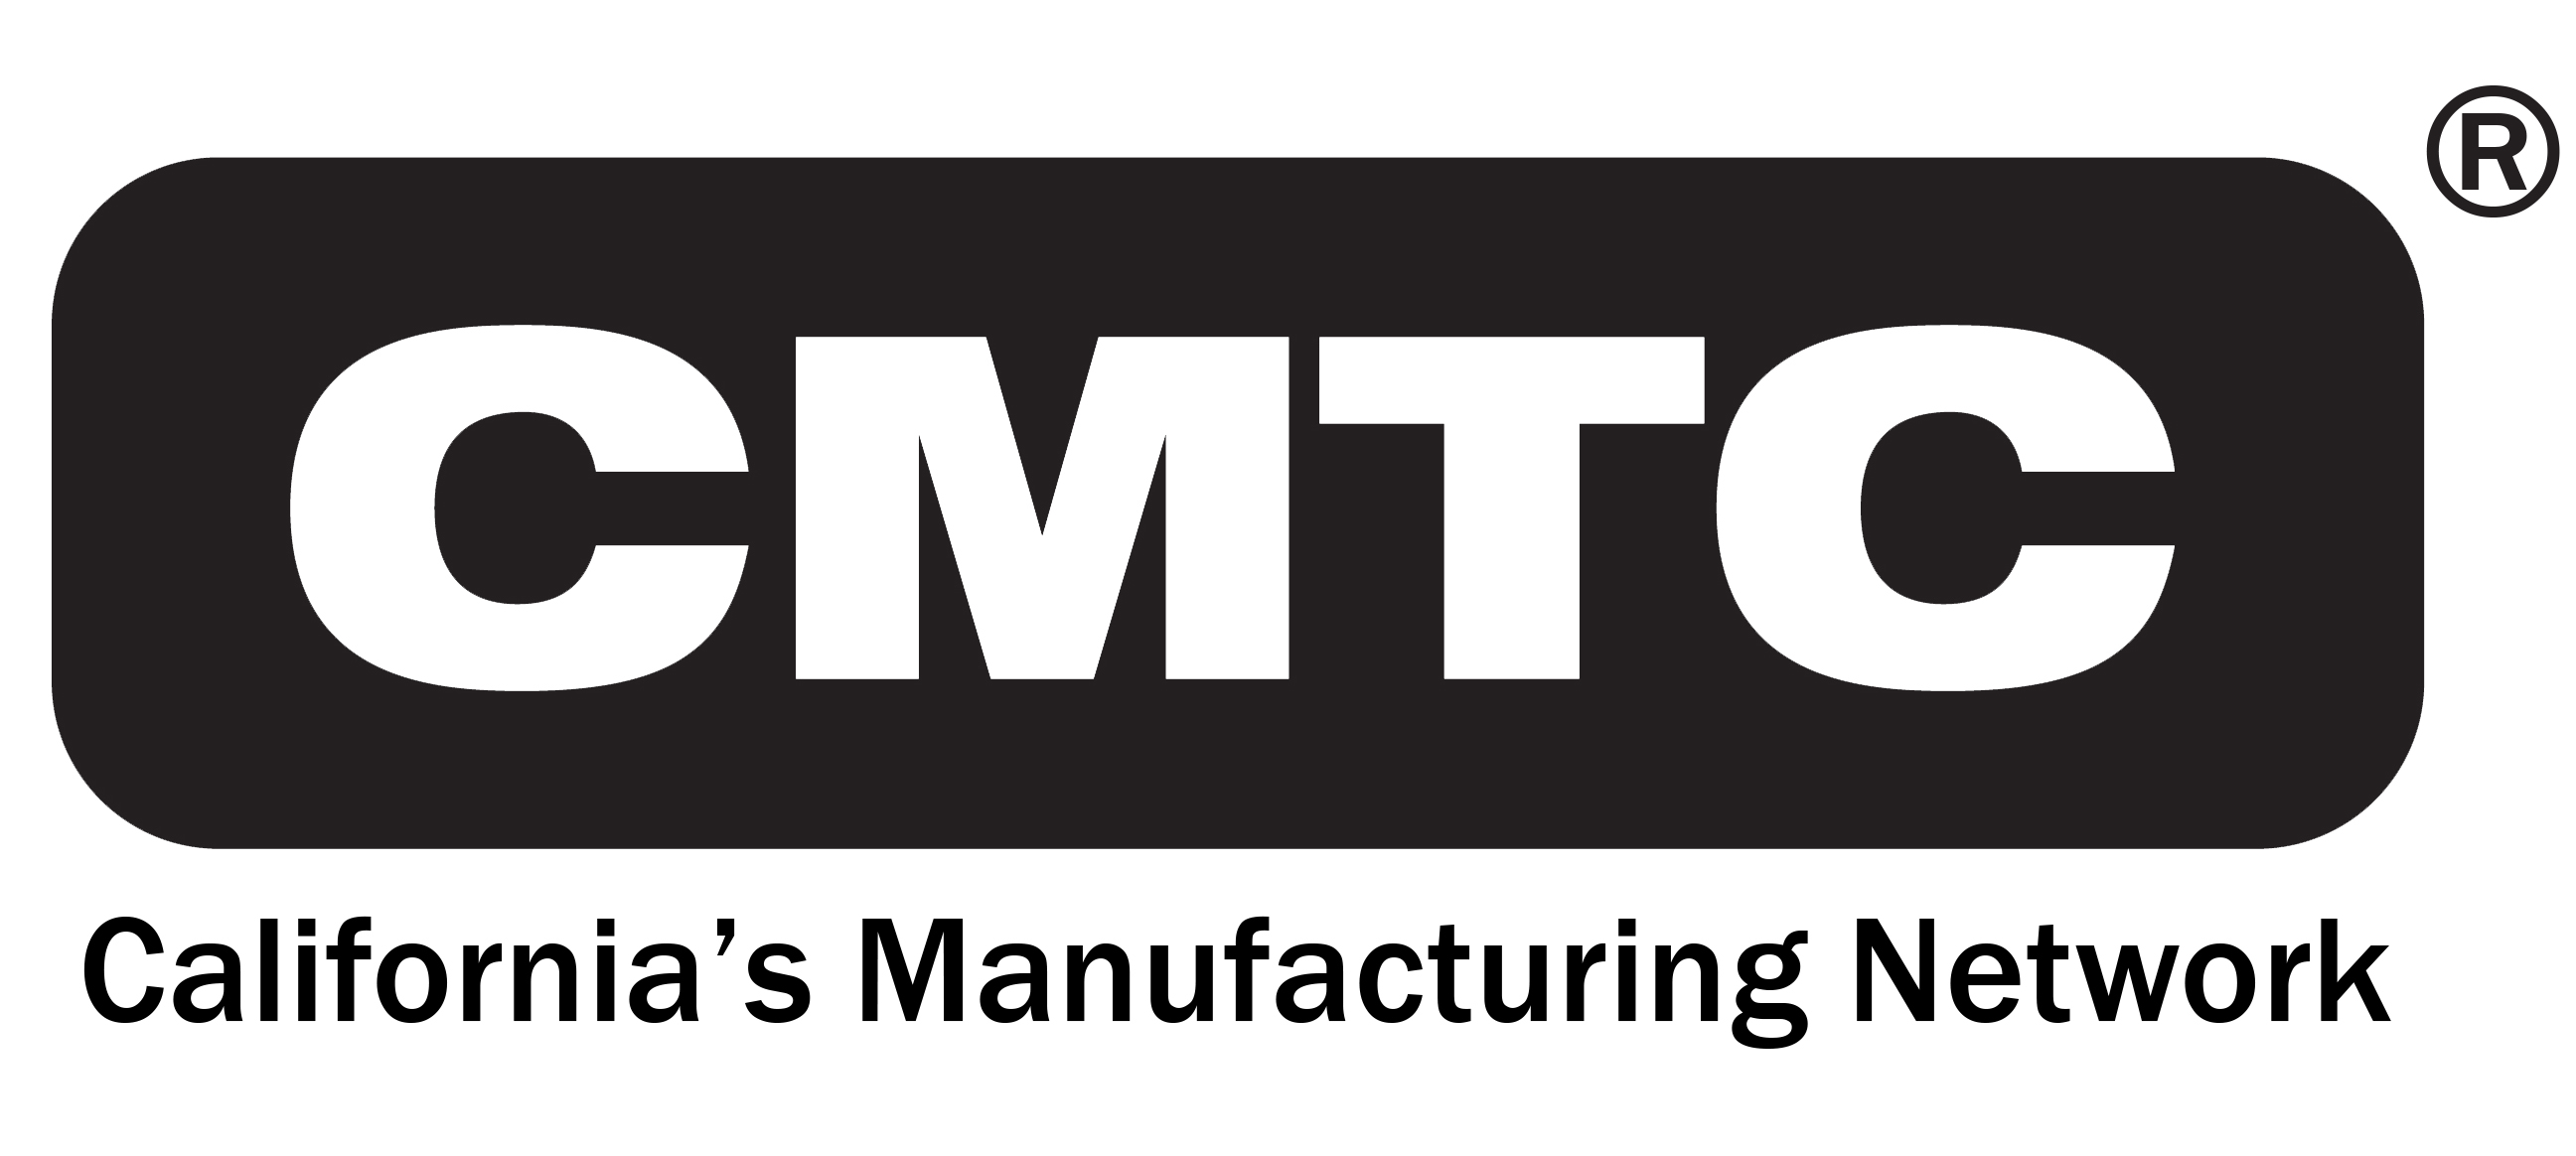 CMTC - California's Manufacturing NETWORK - logo with NEW tagline black 91317-2